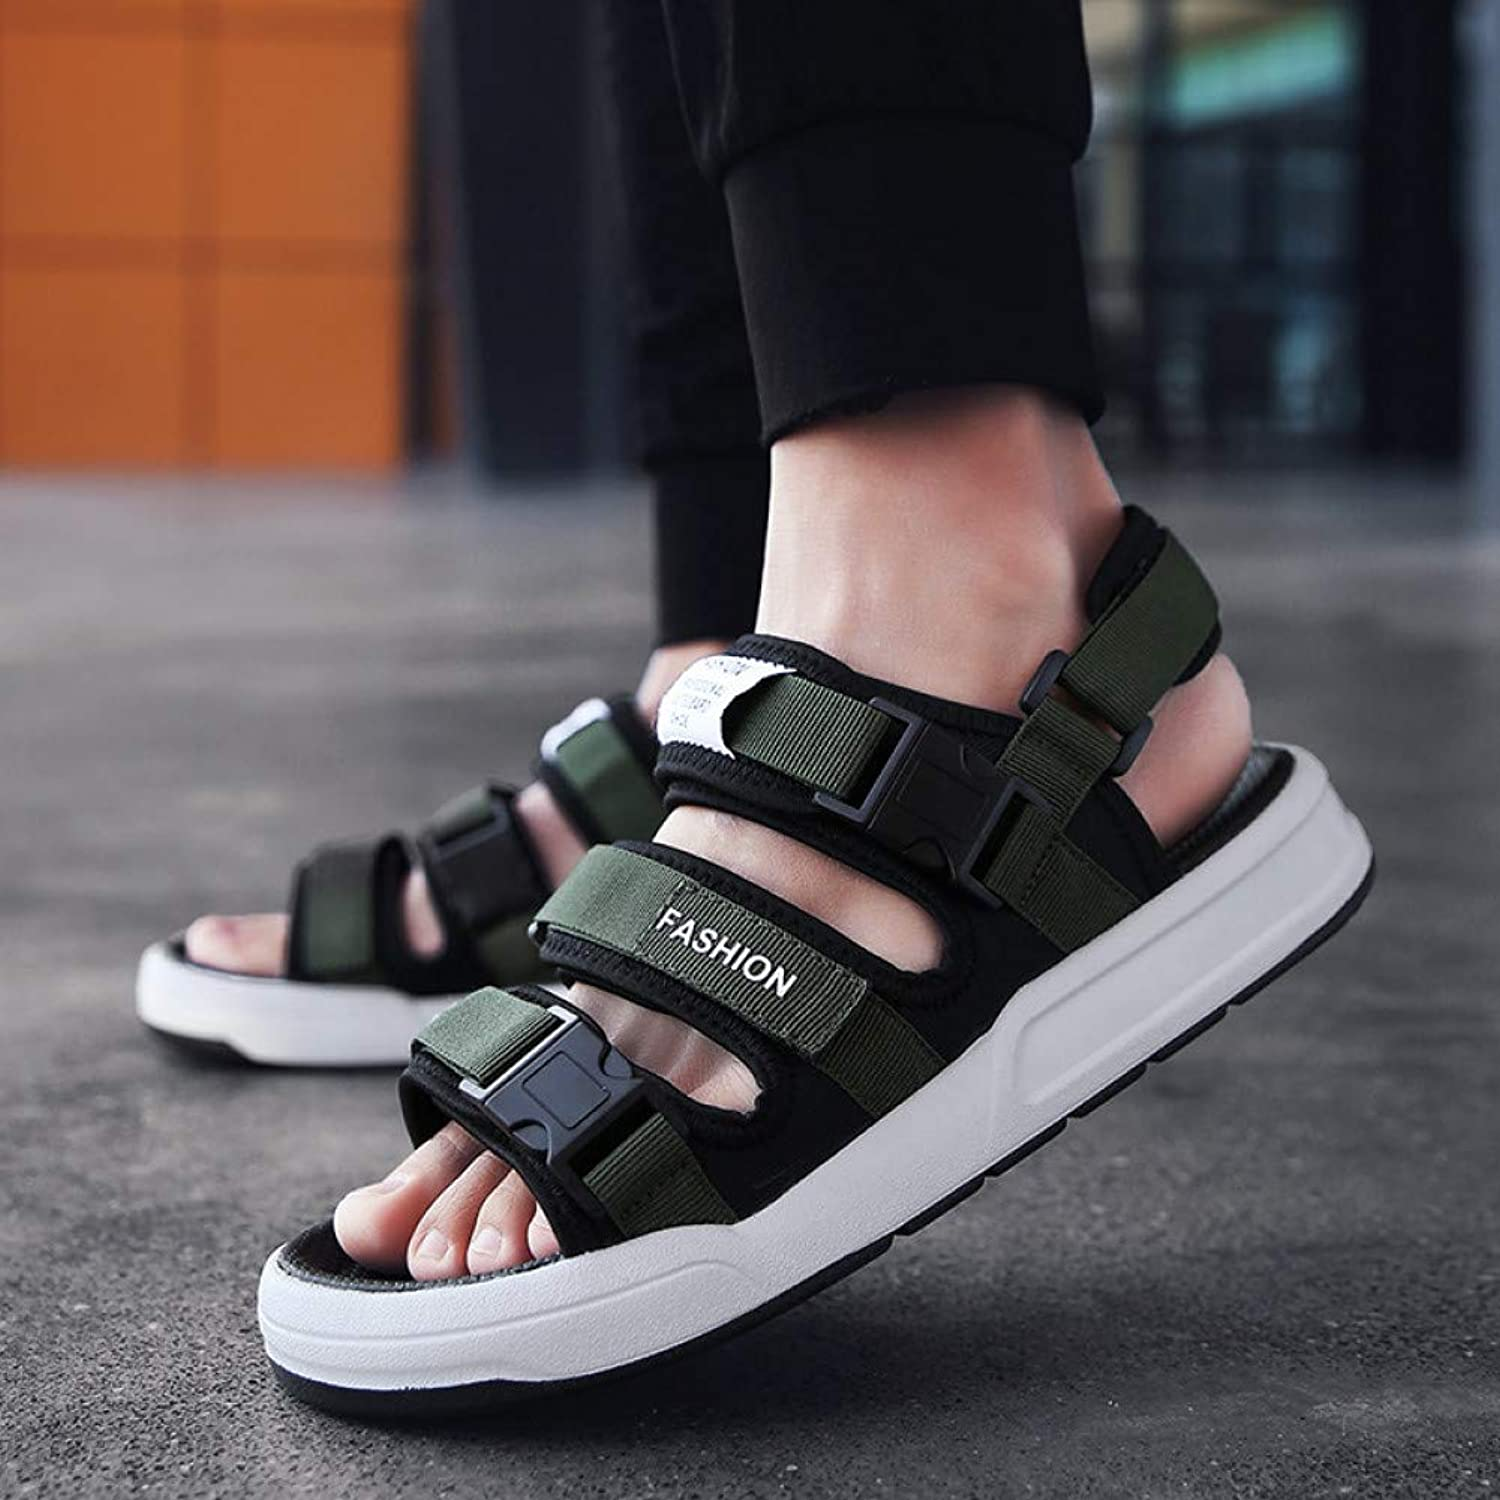 GJLIANGXIE Men'S Sandals Summer New Outdoor Sandals Male Korean Version Of The Wild Beach Sandals And Slippers Men'S Casual Vietnamese Tide Sandals